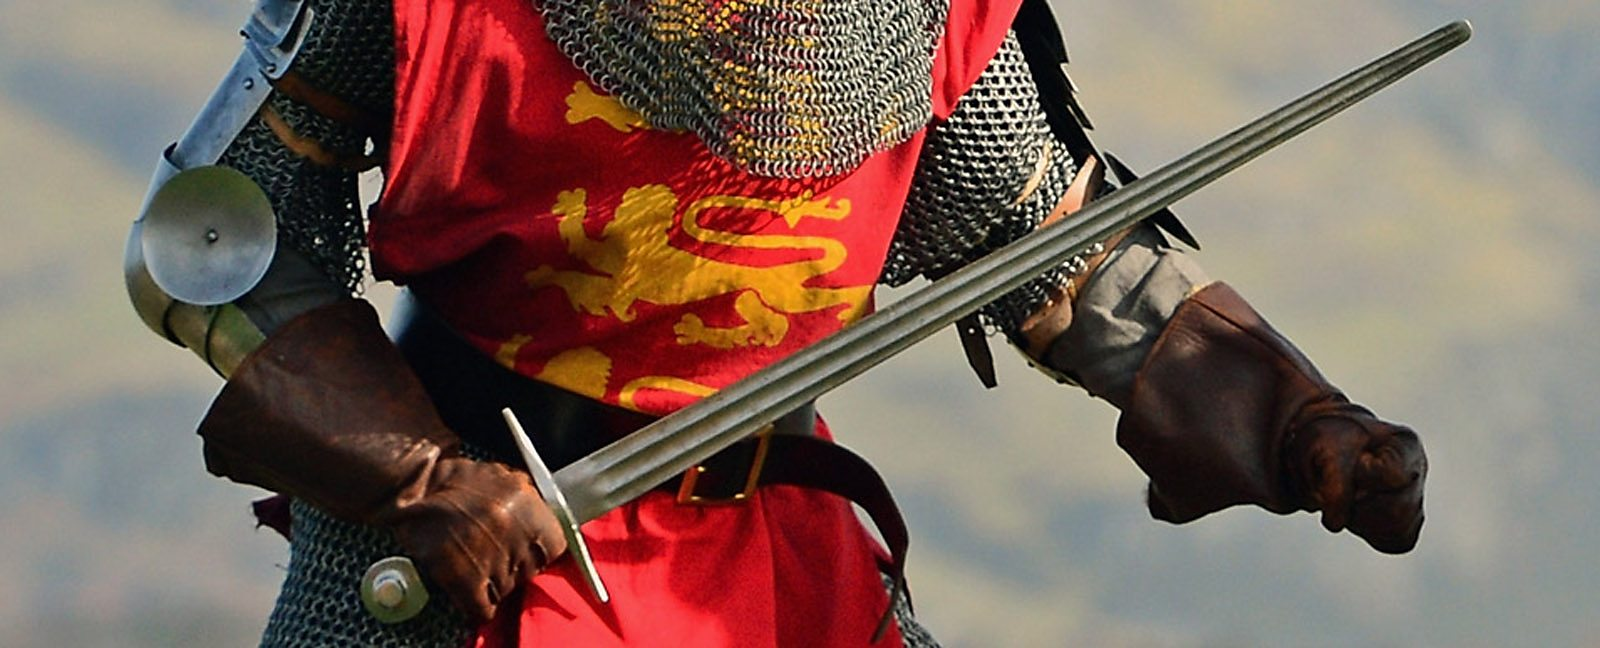 Why is Stirling Castle the bloody heart of Scotland?